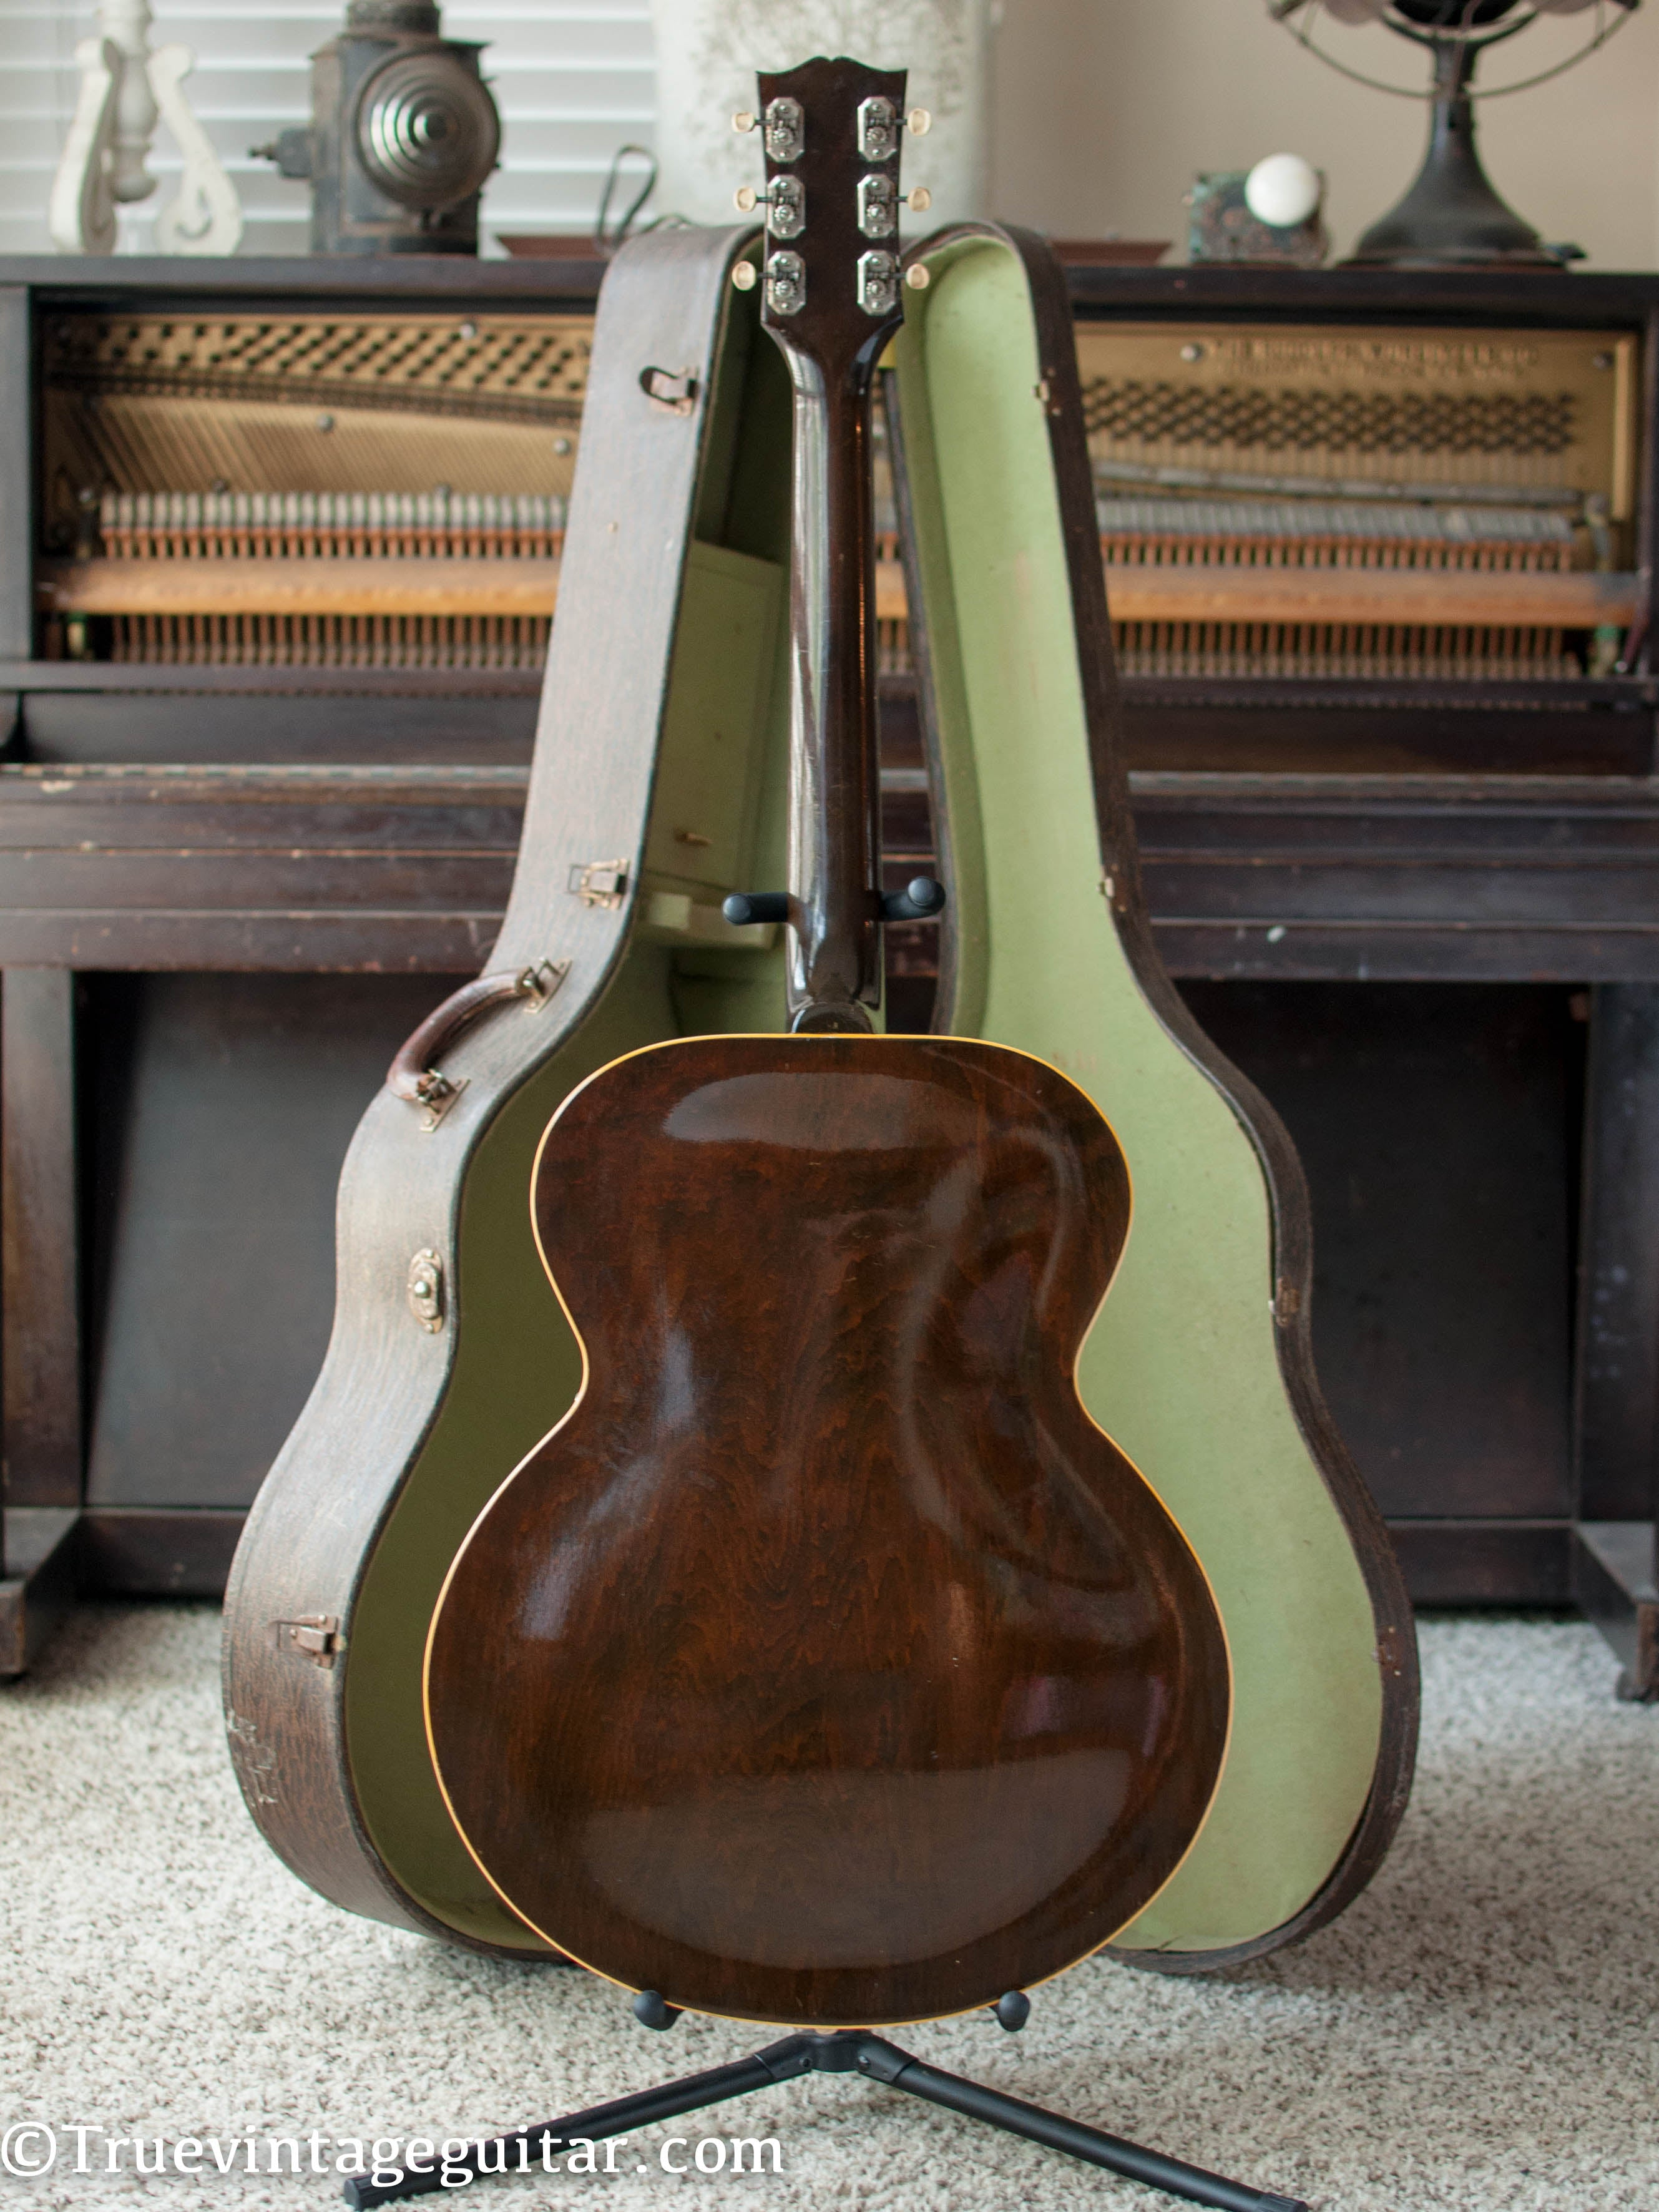 Gibson ES-150 archtop electric guitar vintage 1948